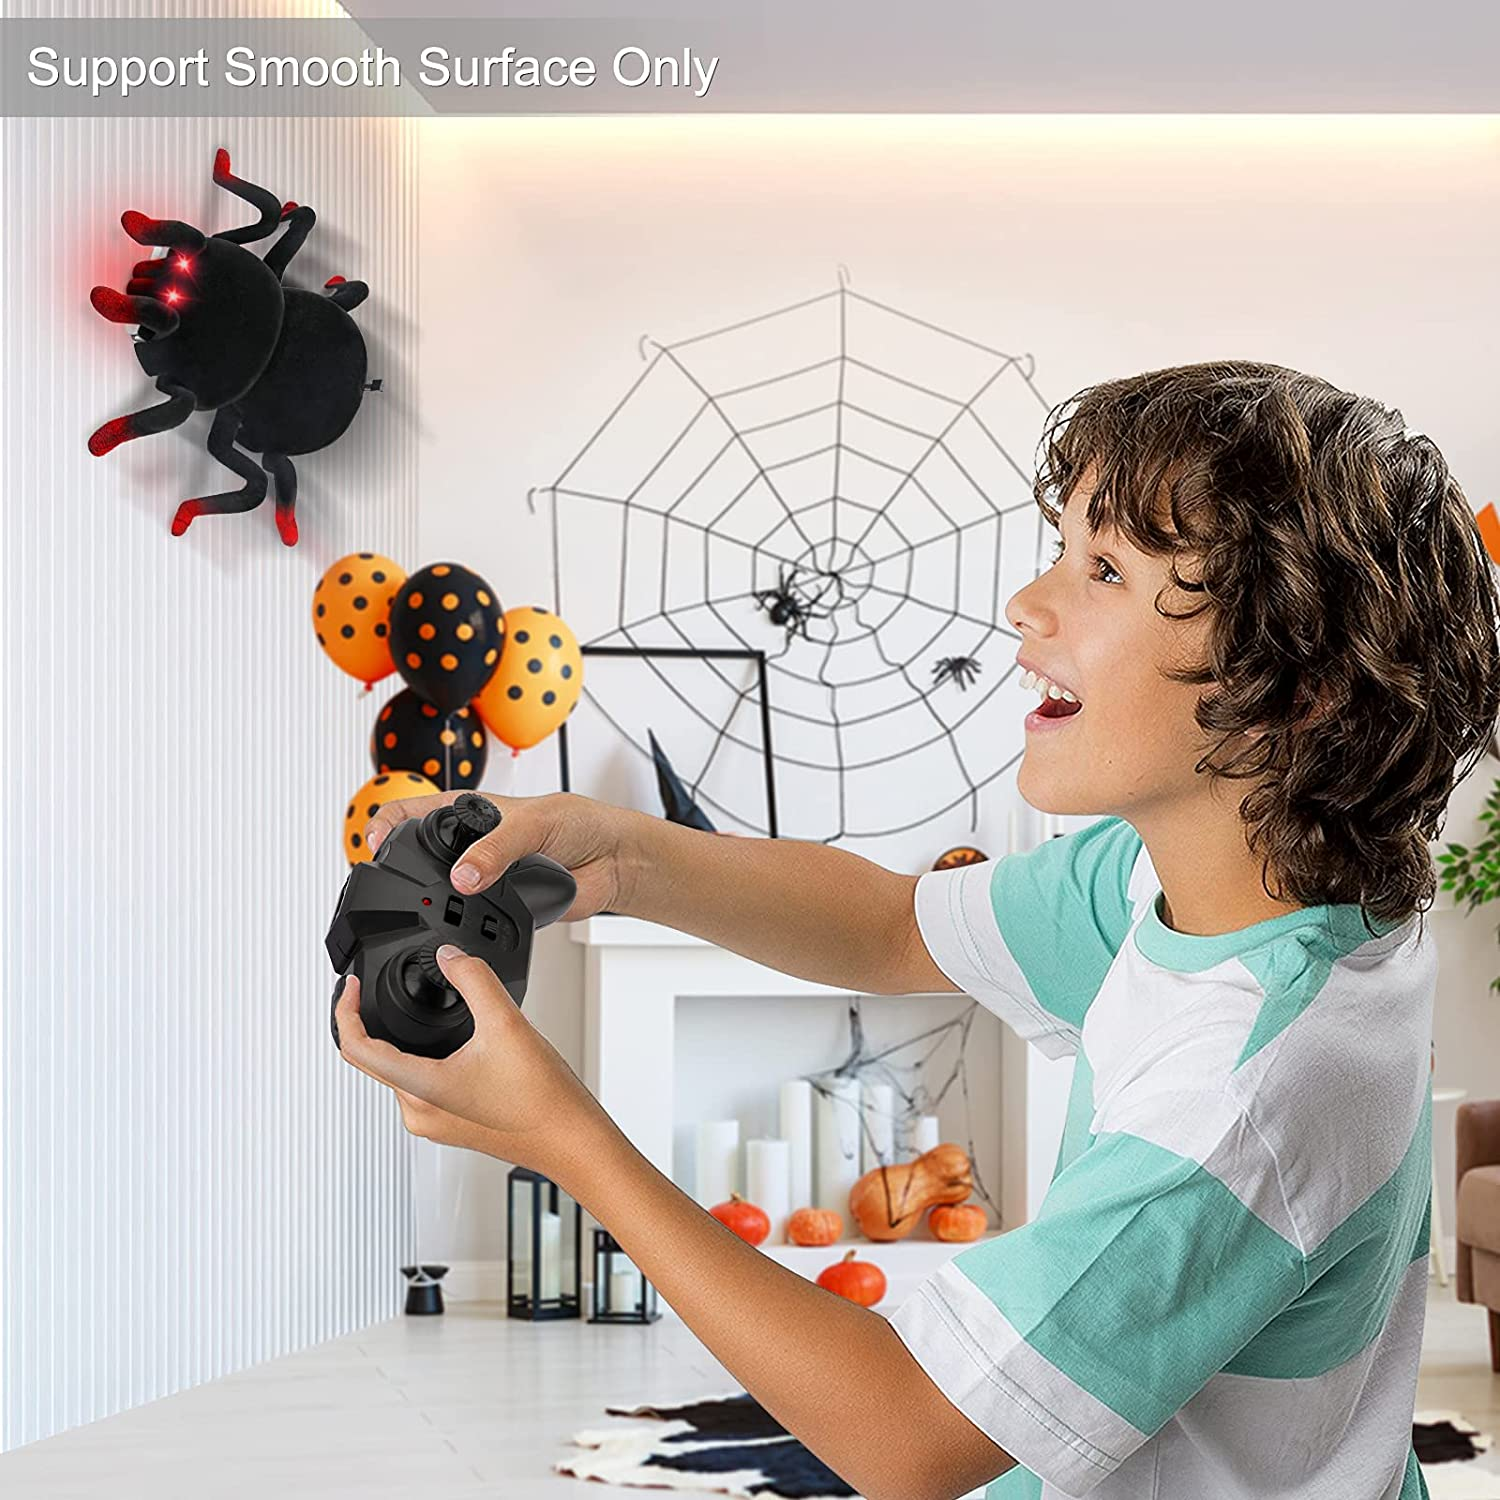 Wall Climbing Remote Control Spider - Boy with Spider and the controller